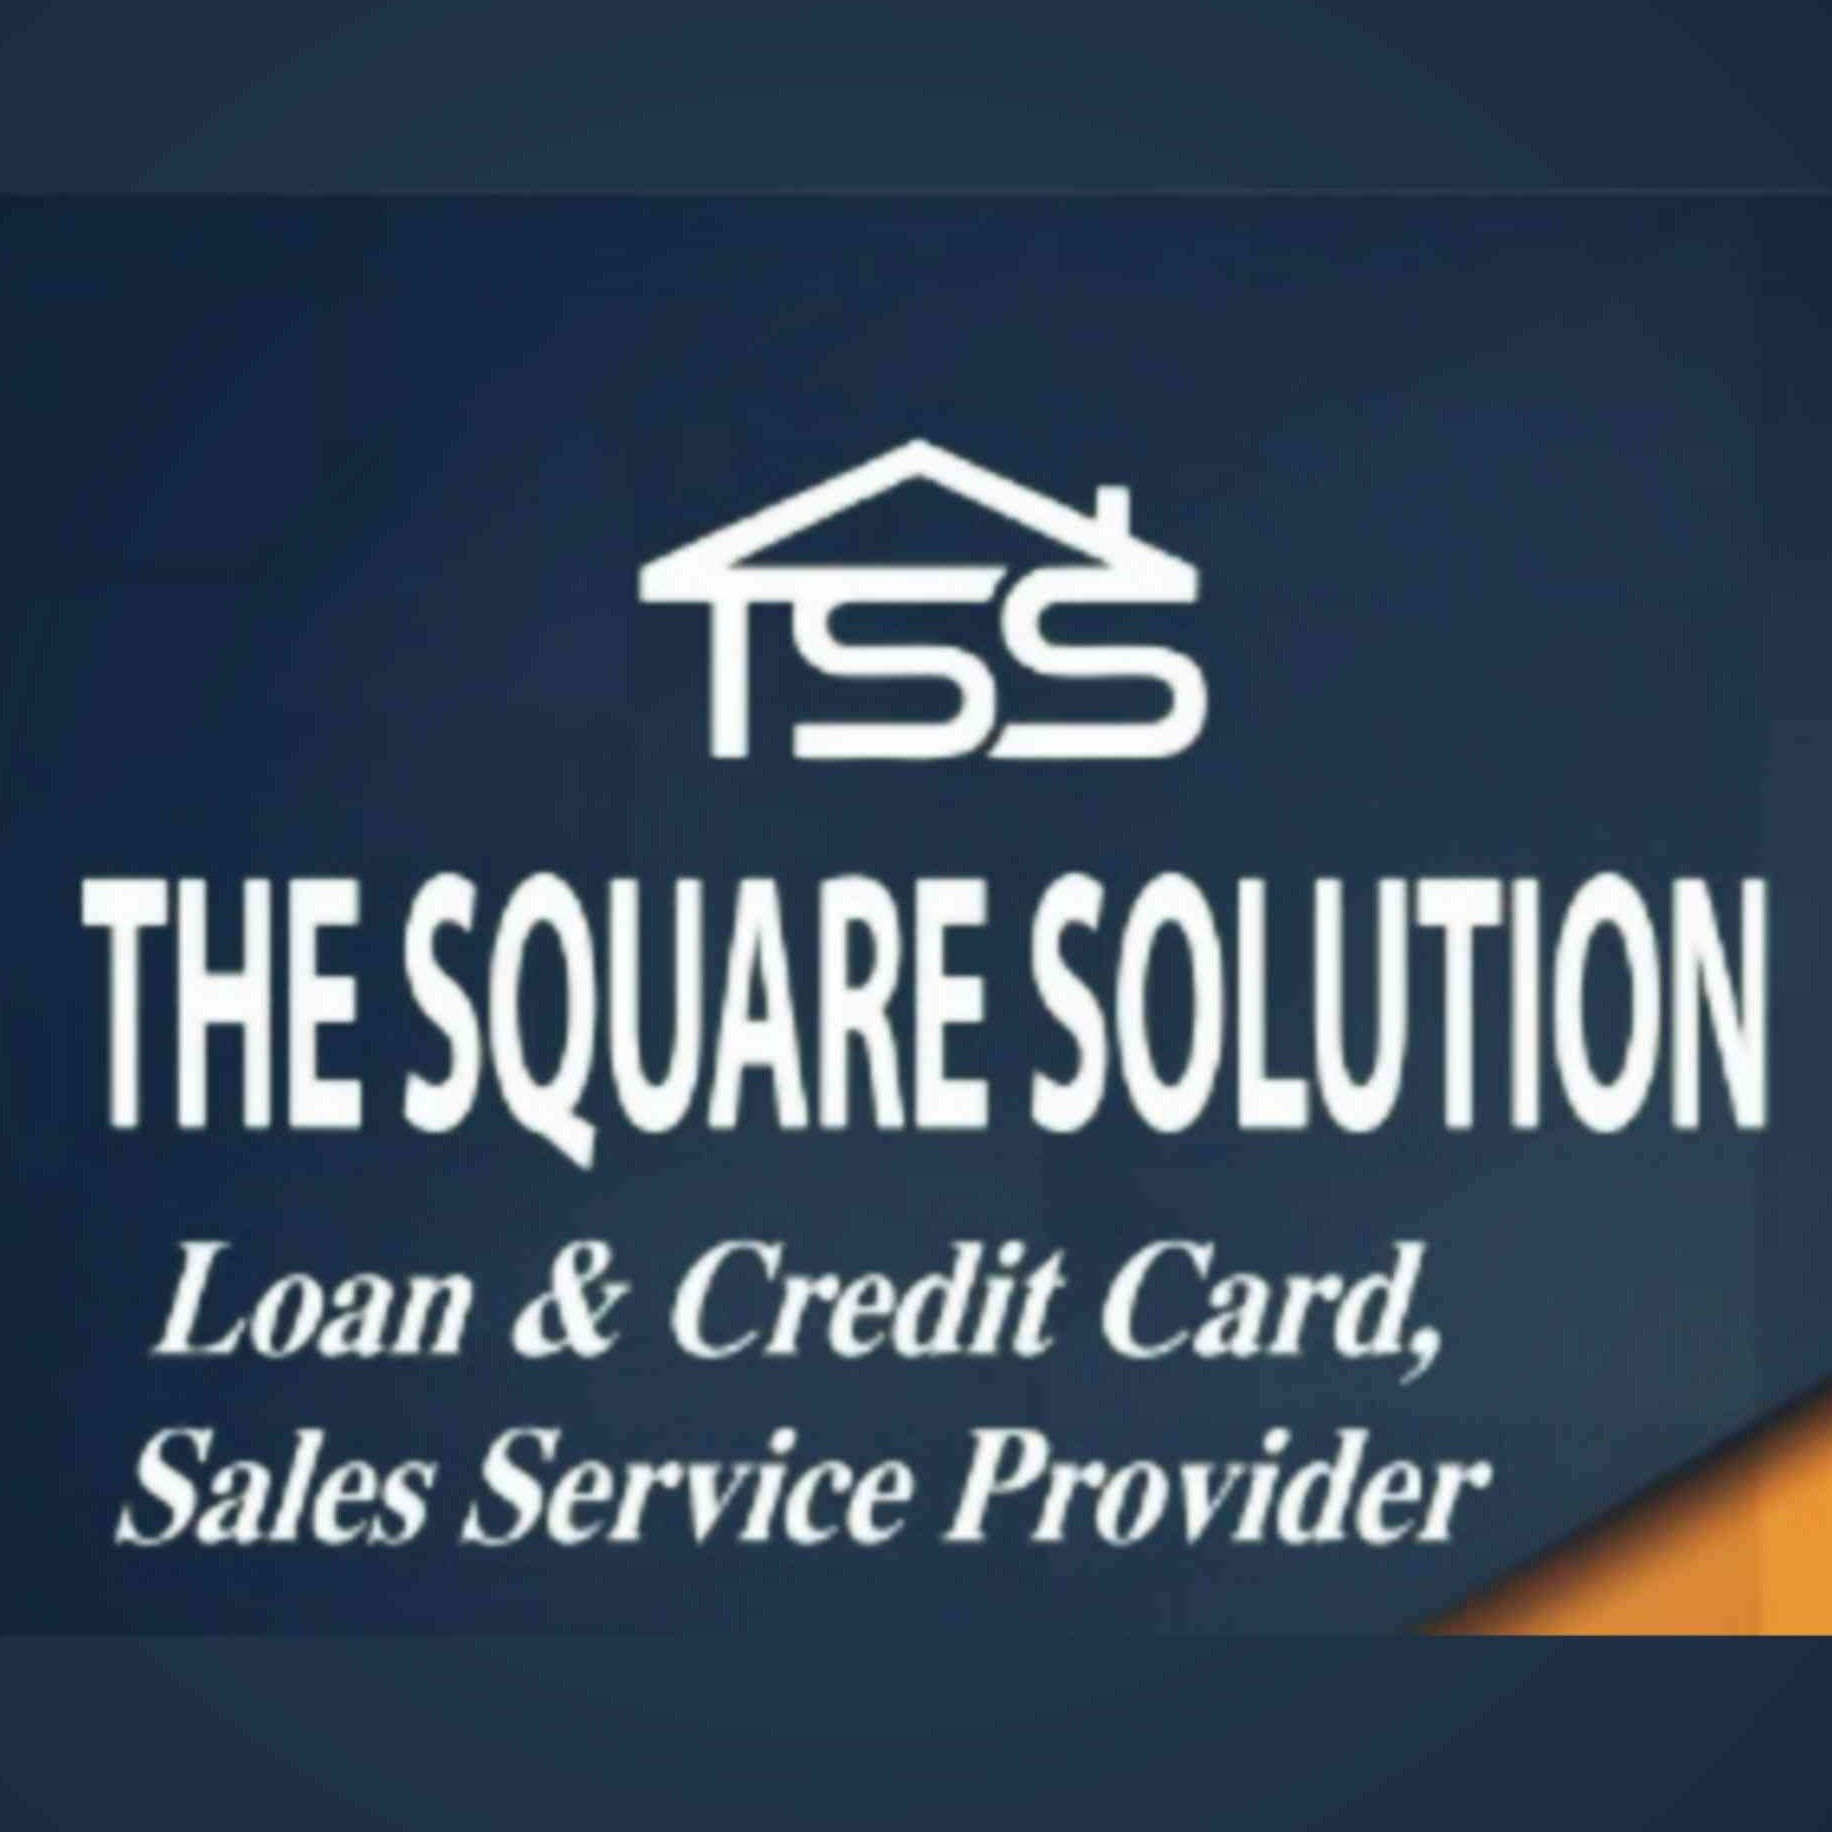 The Square Solution